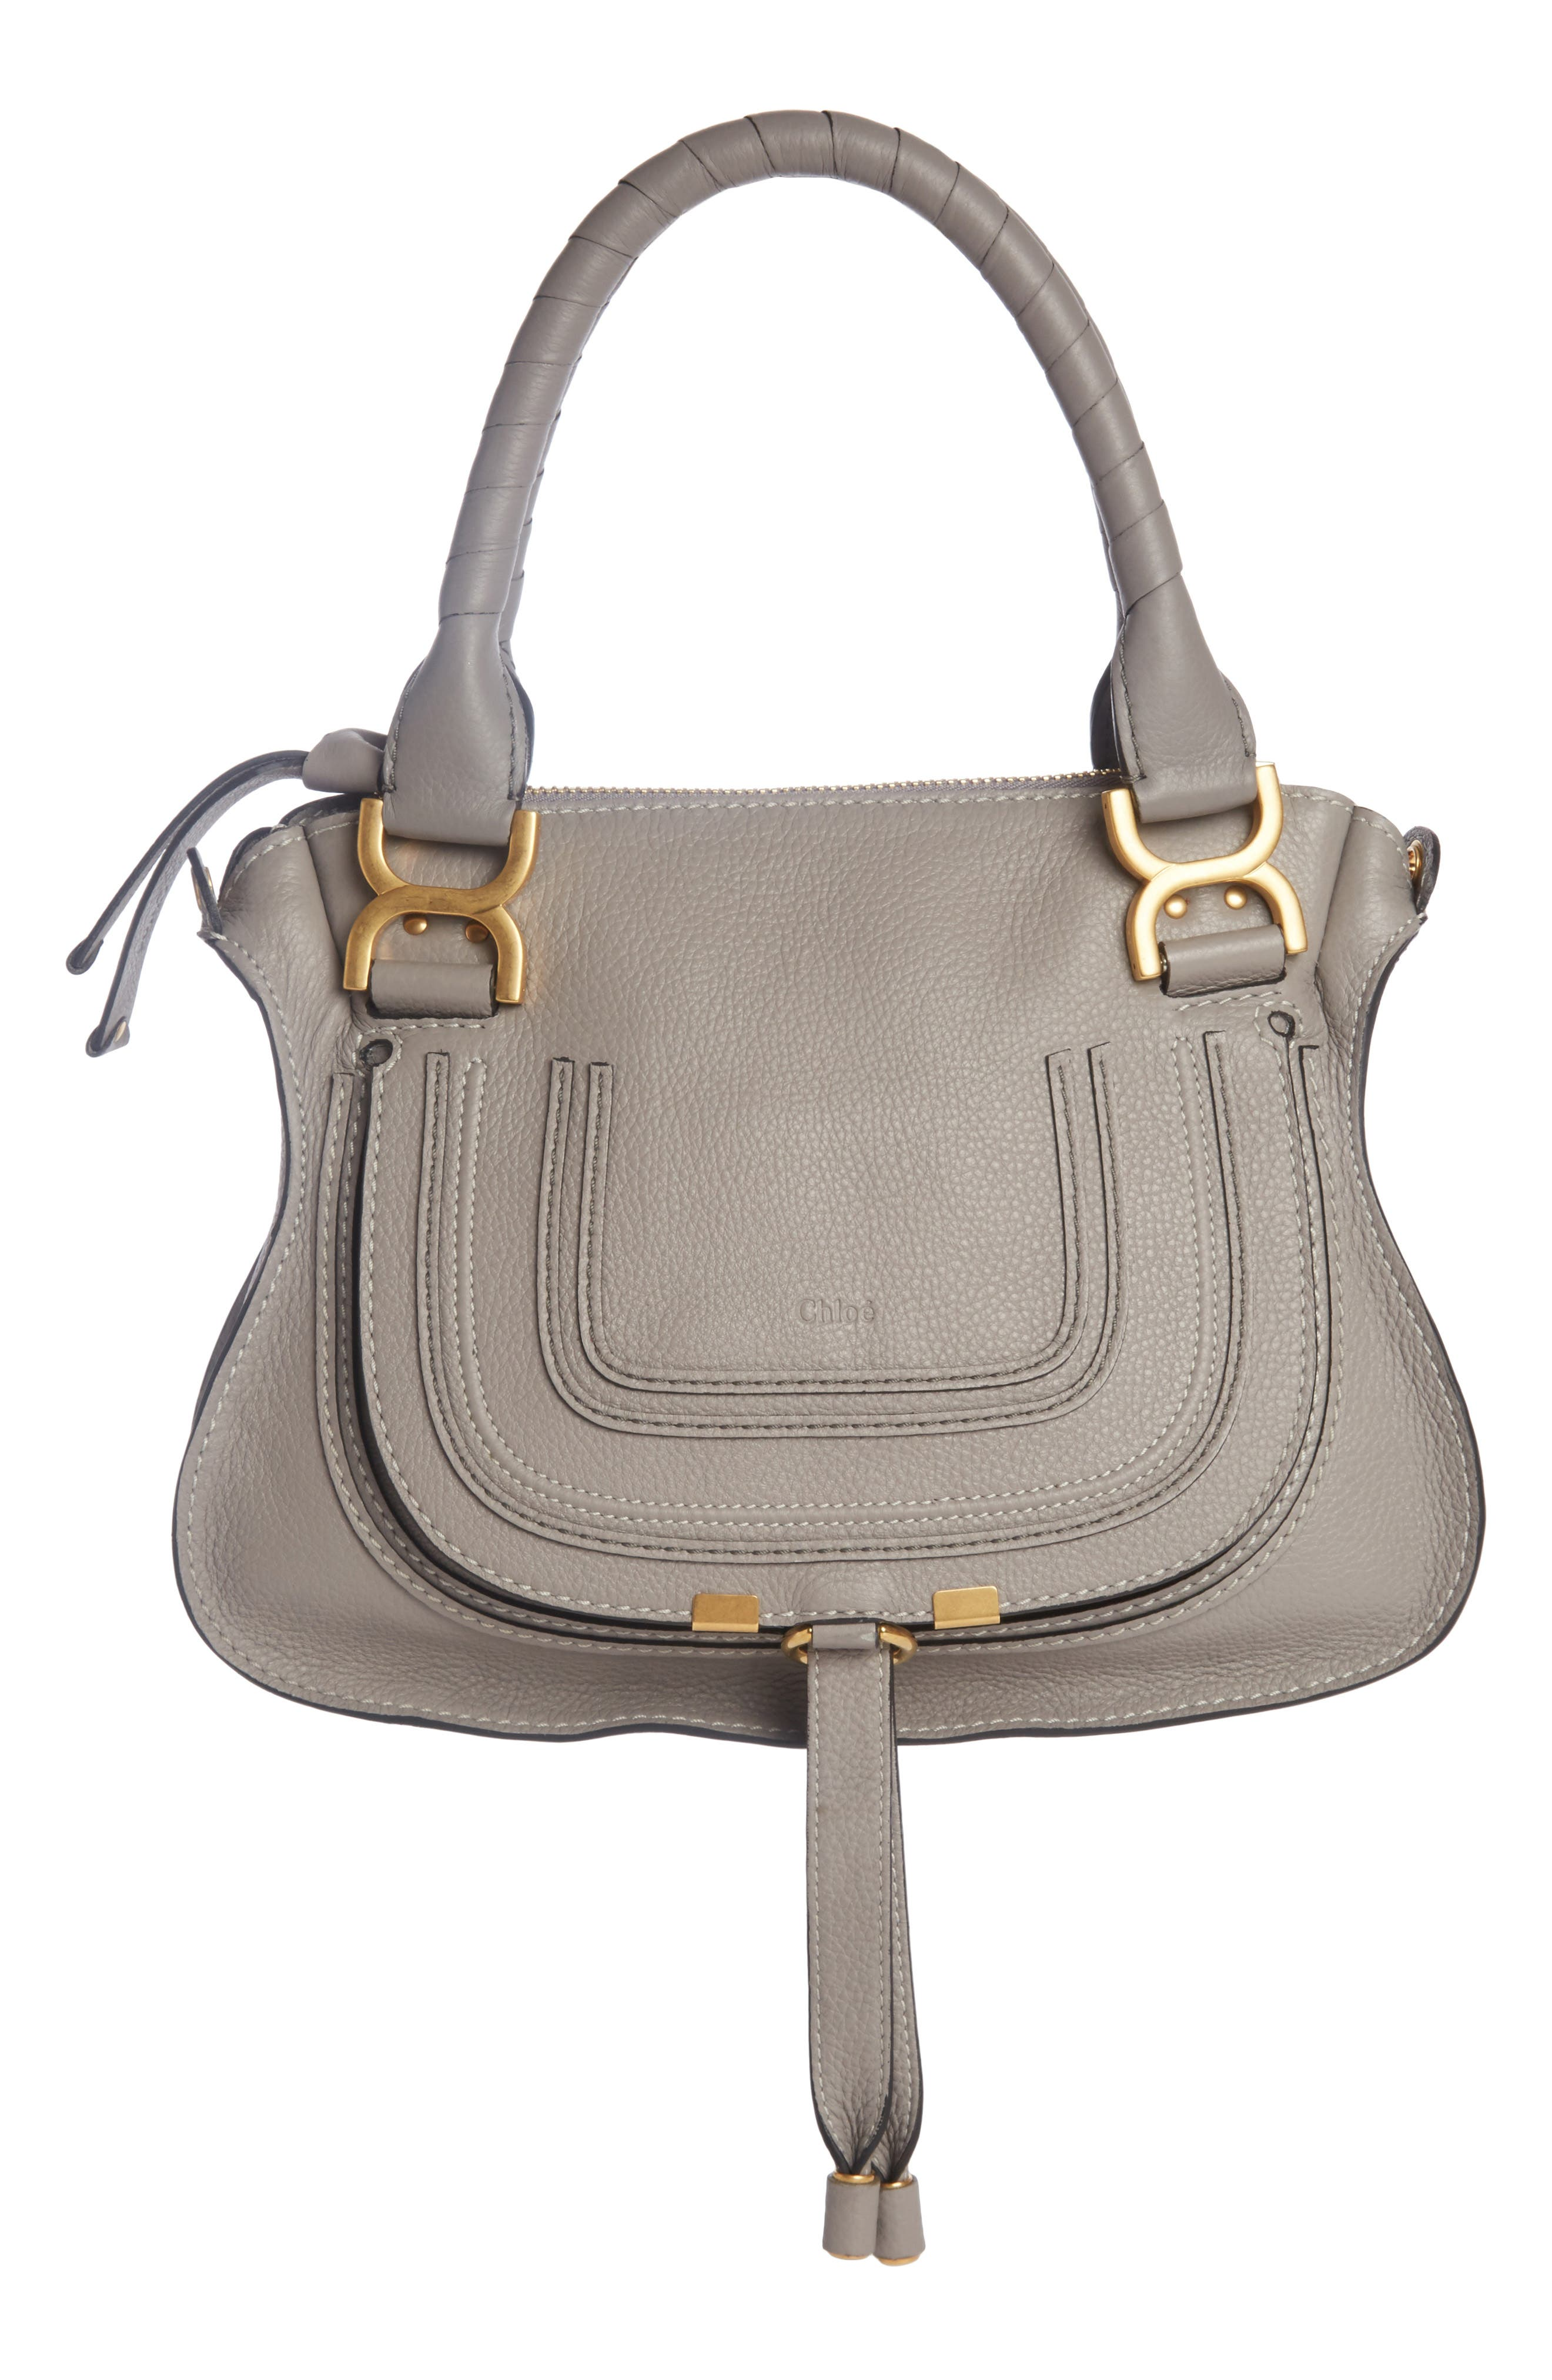 Chloé Small Marcie Leather Satchel   Nordstrom